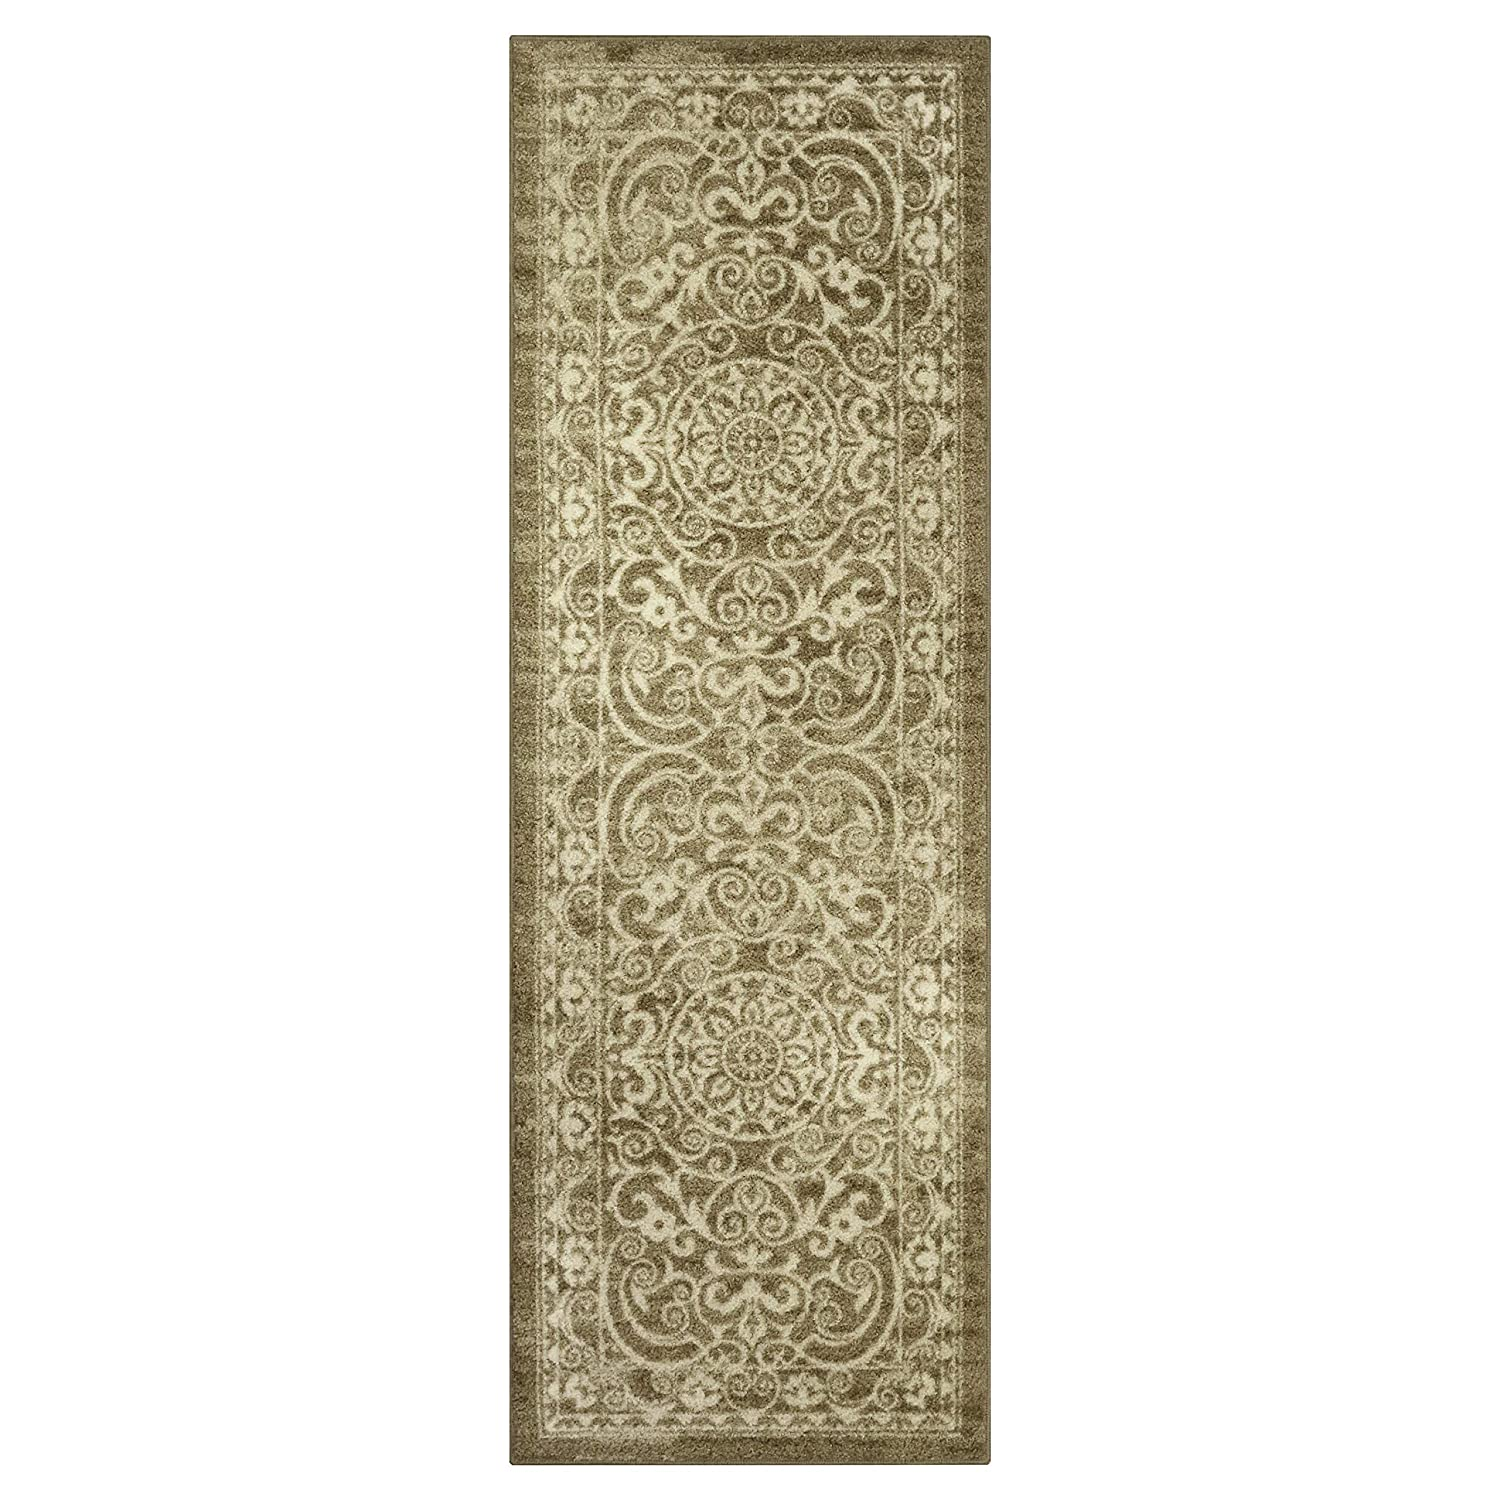 Made in USA Pelham 2 x 6 Non Skid Hallway Carpet Entry Rugs Runners Khaki for Kitchen and Entryway Maples Rugs Runner Rug